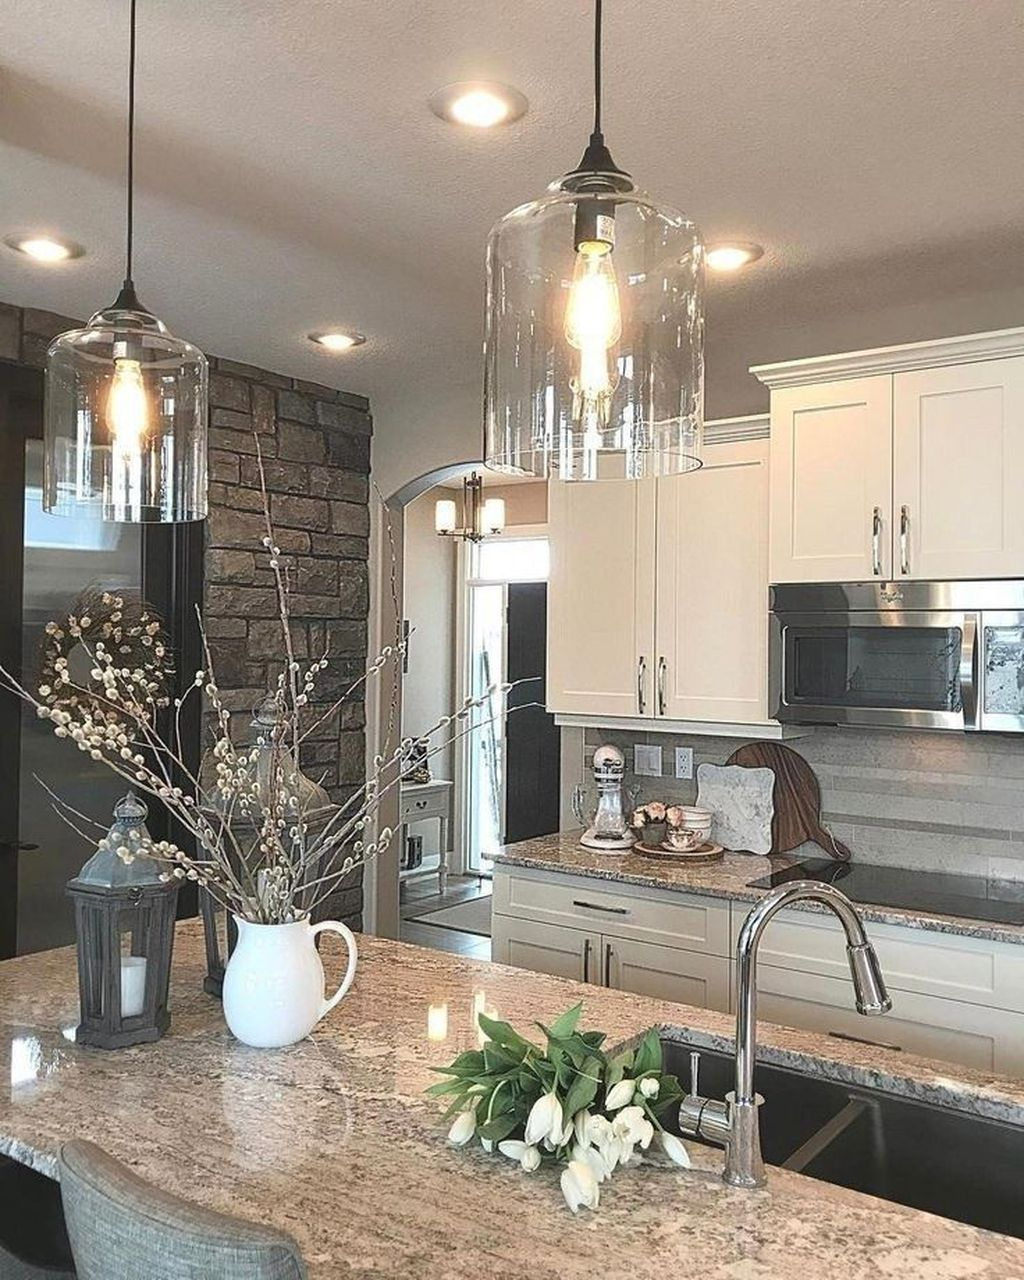 Classy Kitchen Remodeling Ideas On A Budget This Year 23